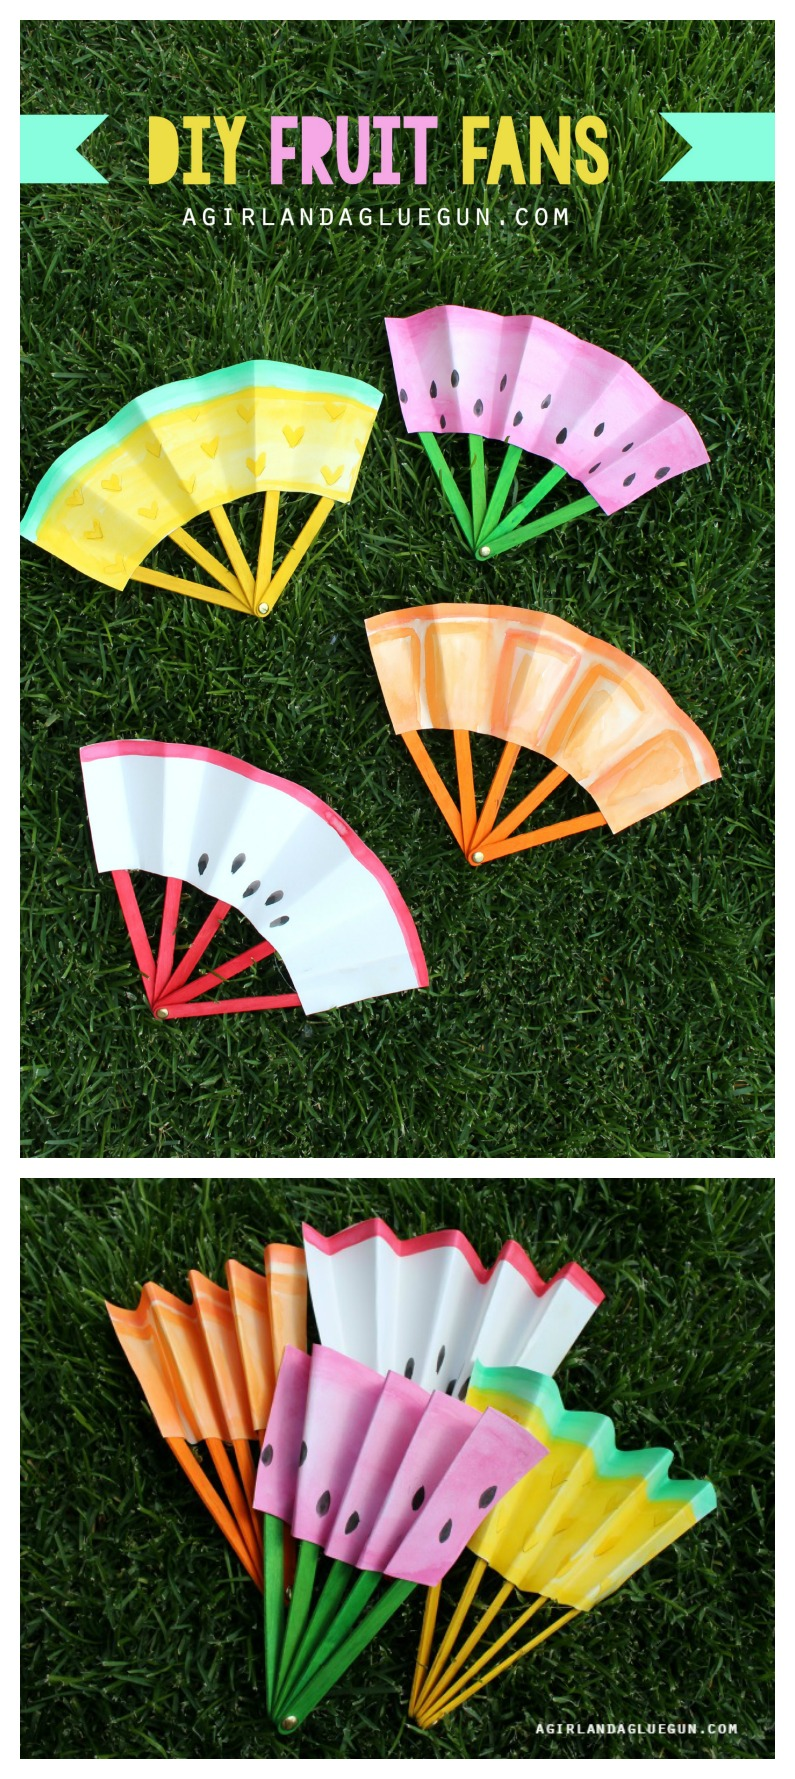 diy-summer-fruit-fans-that-fold-up-a-girl-and-a-glue-gun_1.jpg